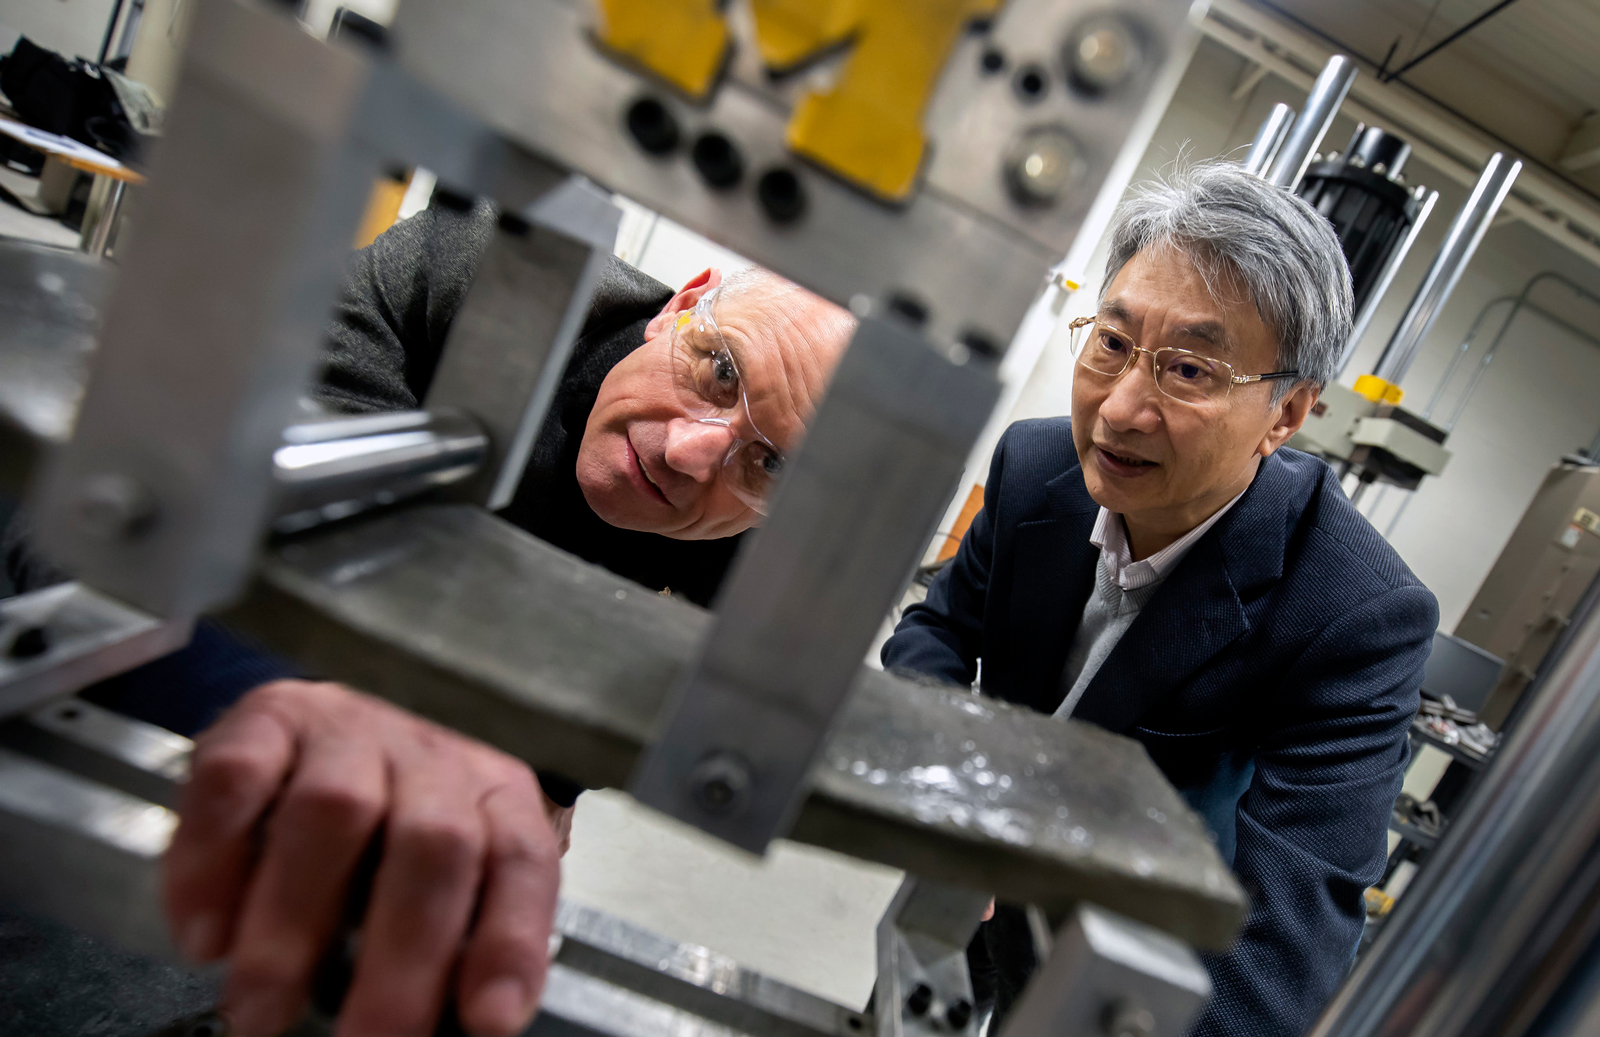 Volker Sick, director of the Global CO2 Initiative, and Victor Li, the James R. Rice Distinguished University Professor of Engineering and E. Benjamin Wylie Collegiate Professor of Civil Engineering, watch as a piece of bendable concrete infused with CO2 undergoes a tensile test. Li's technology would sequester atmospheric CO2 in concrete. Photo: Joseph Xu/Michigan Engineering